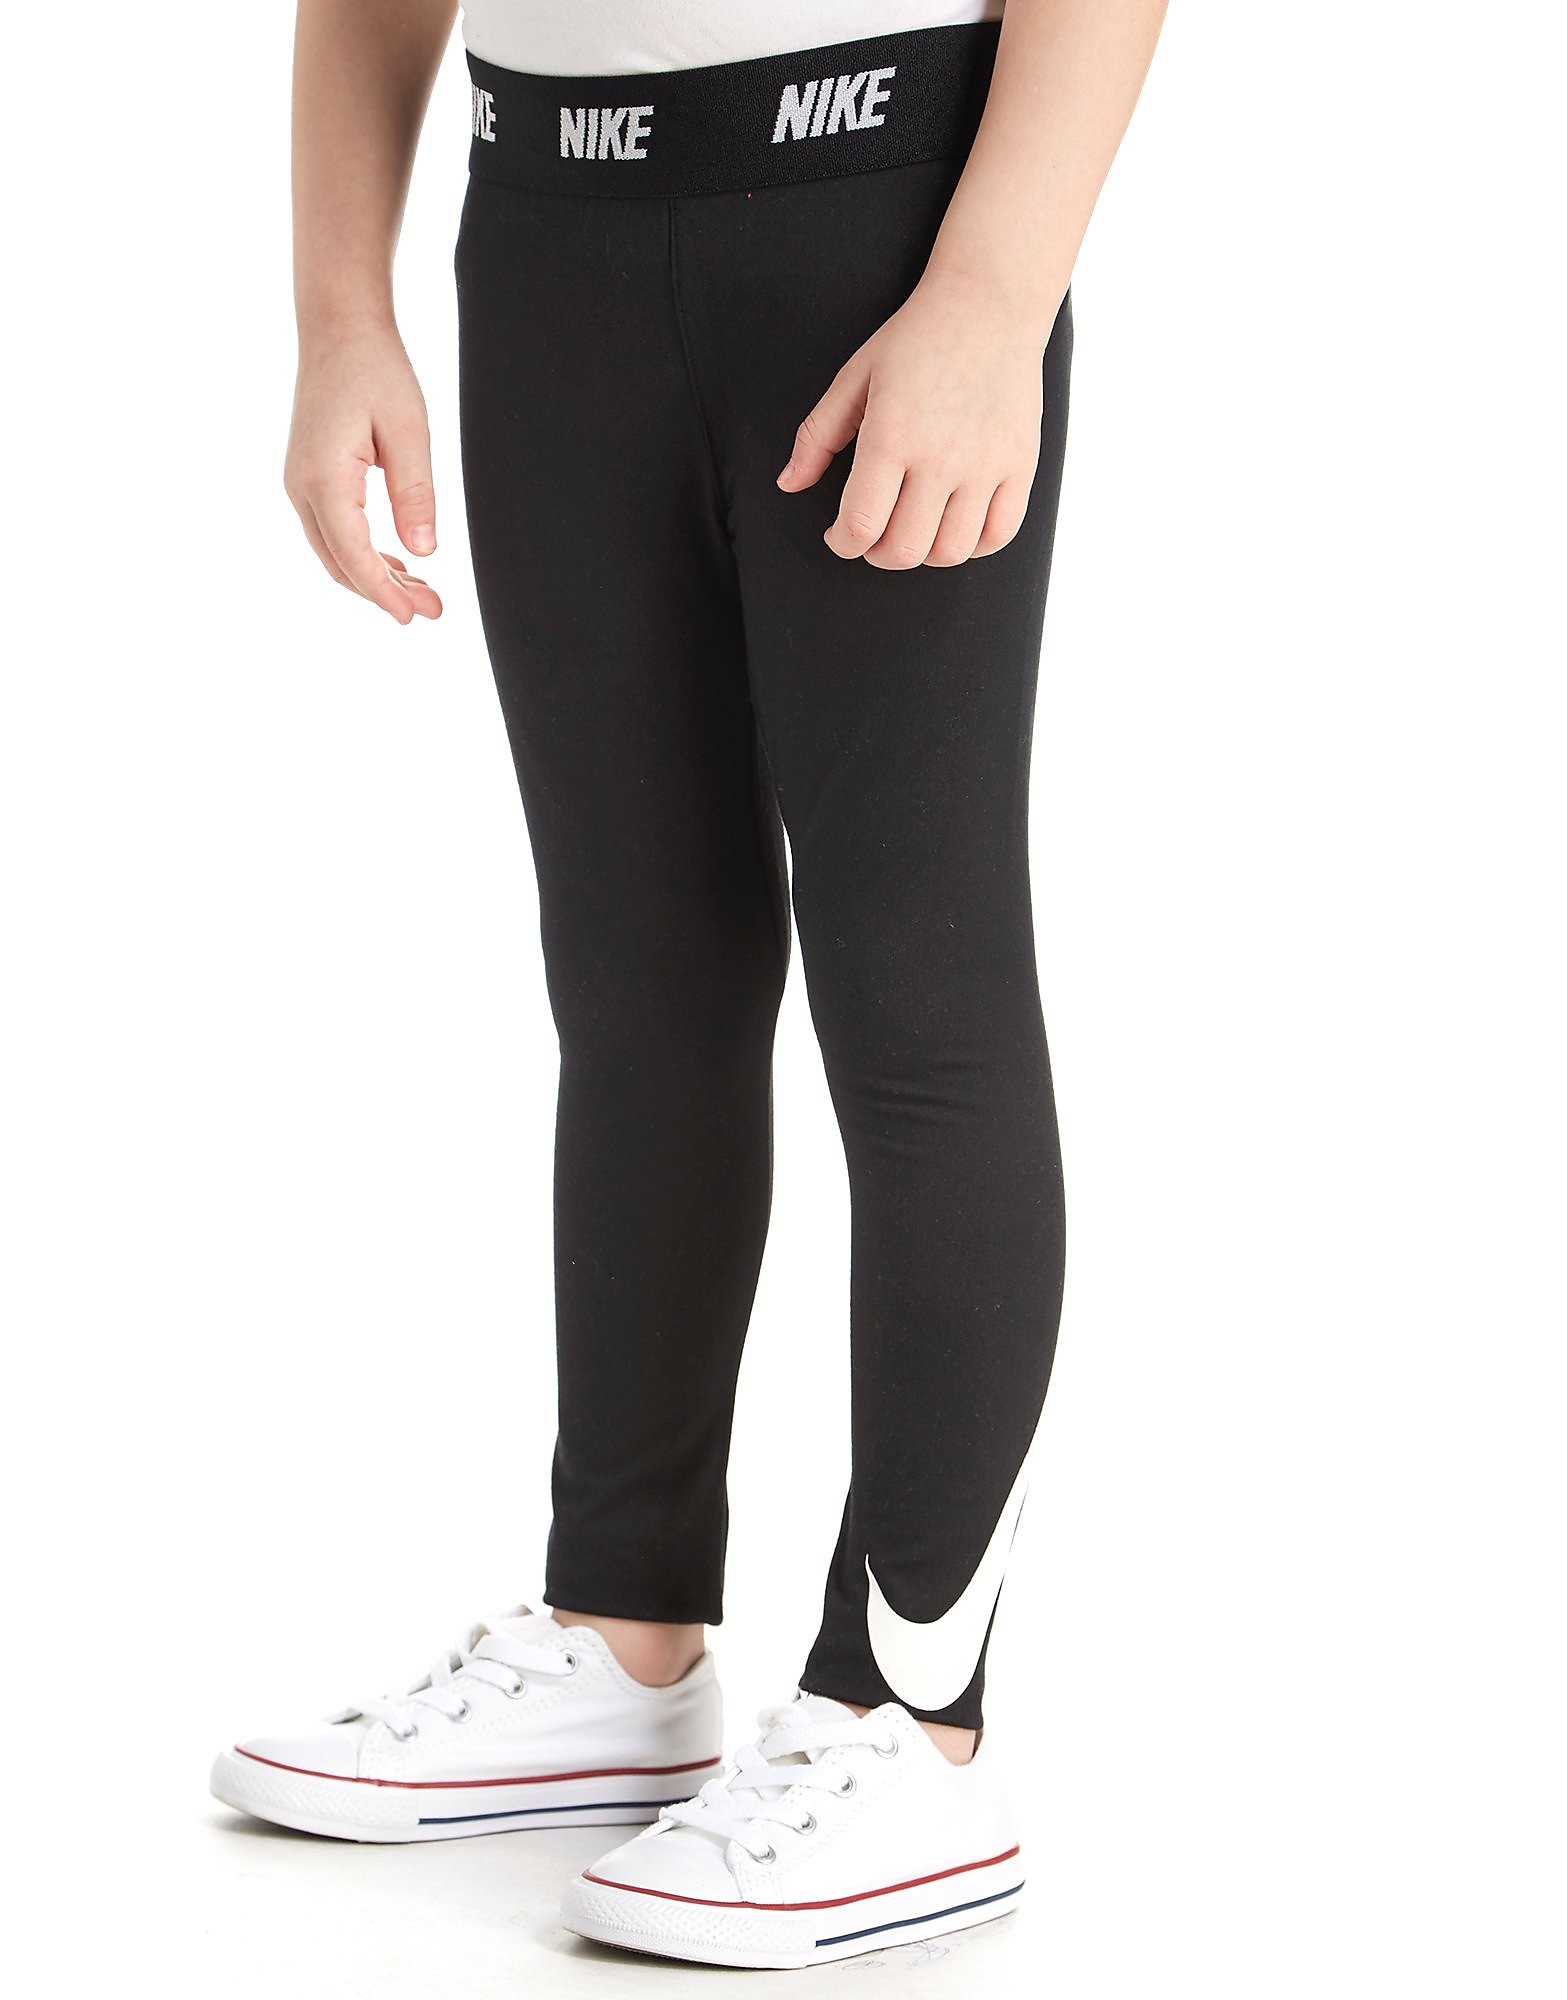 Nike Girls' Swoosh Leggings für Kinder